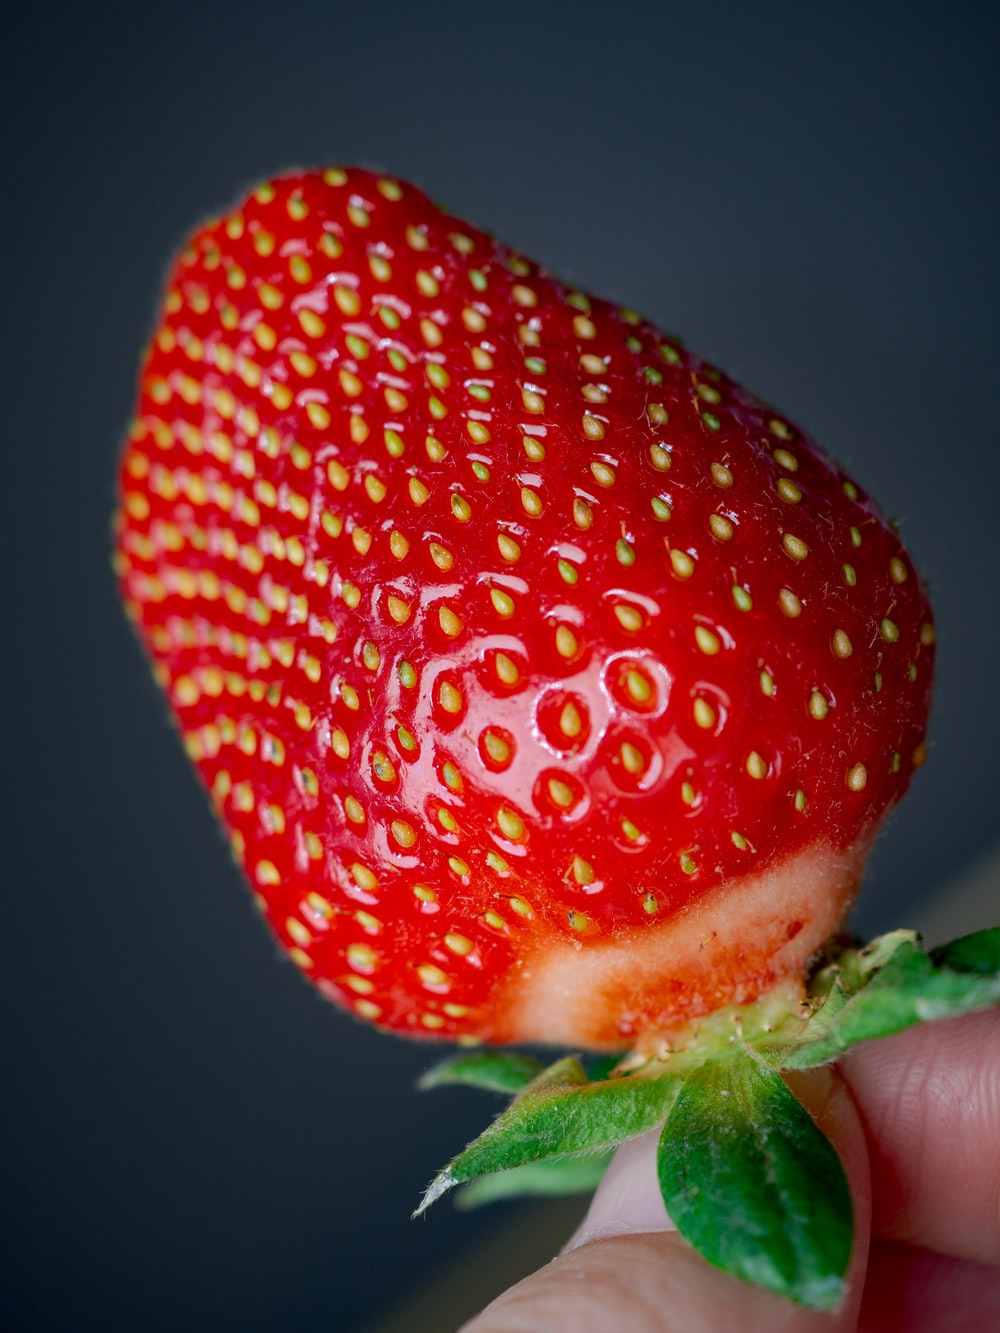 red strawberry in close up photography